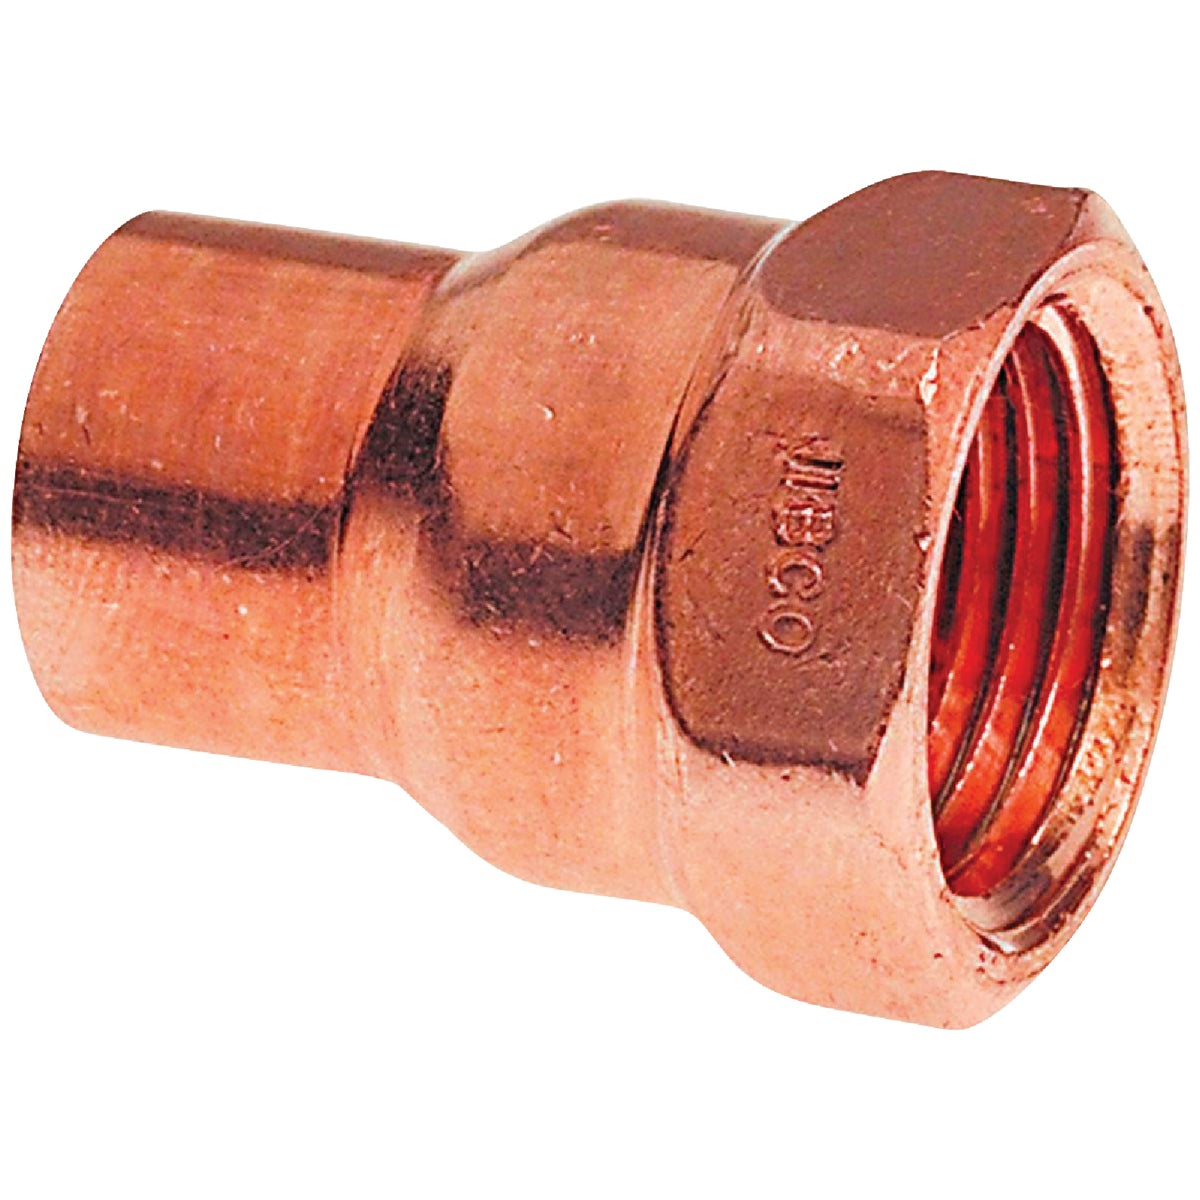 "1/2""CX3/4""F ADAPTER - 30134 by Elkhart Prod Corp"